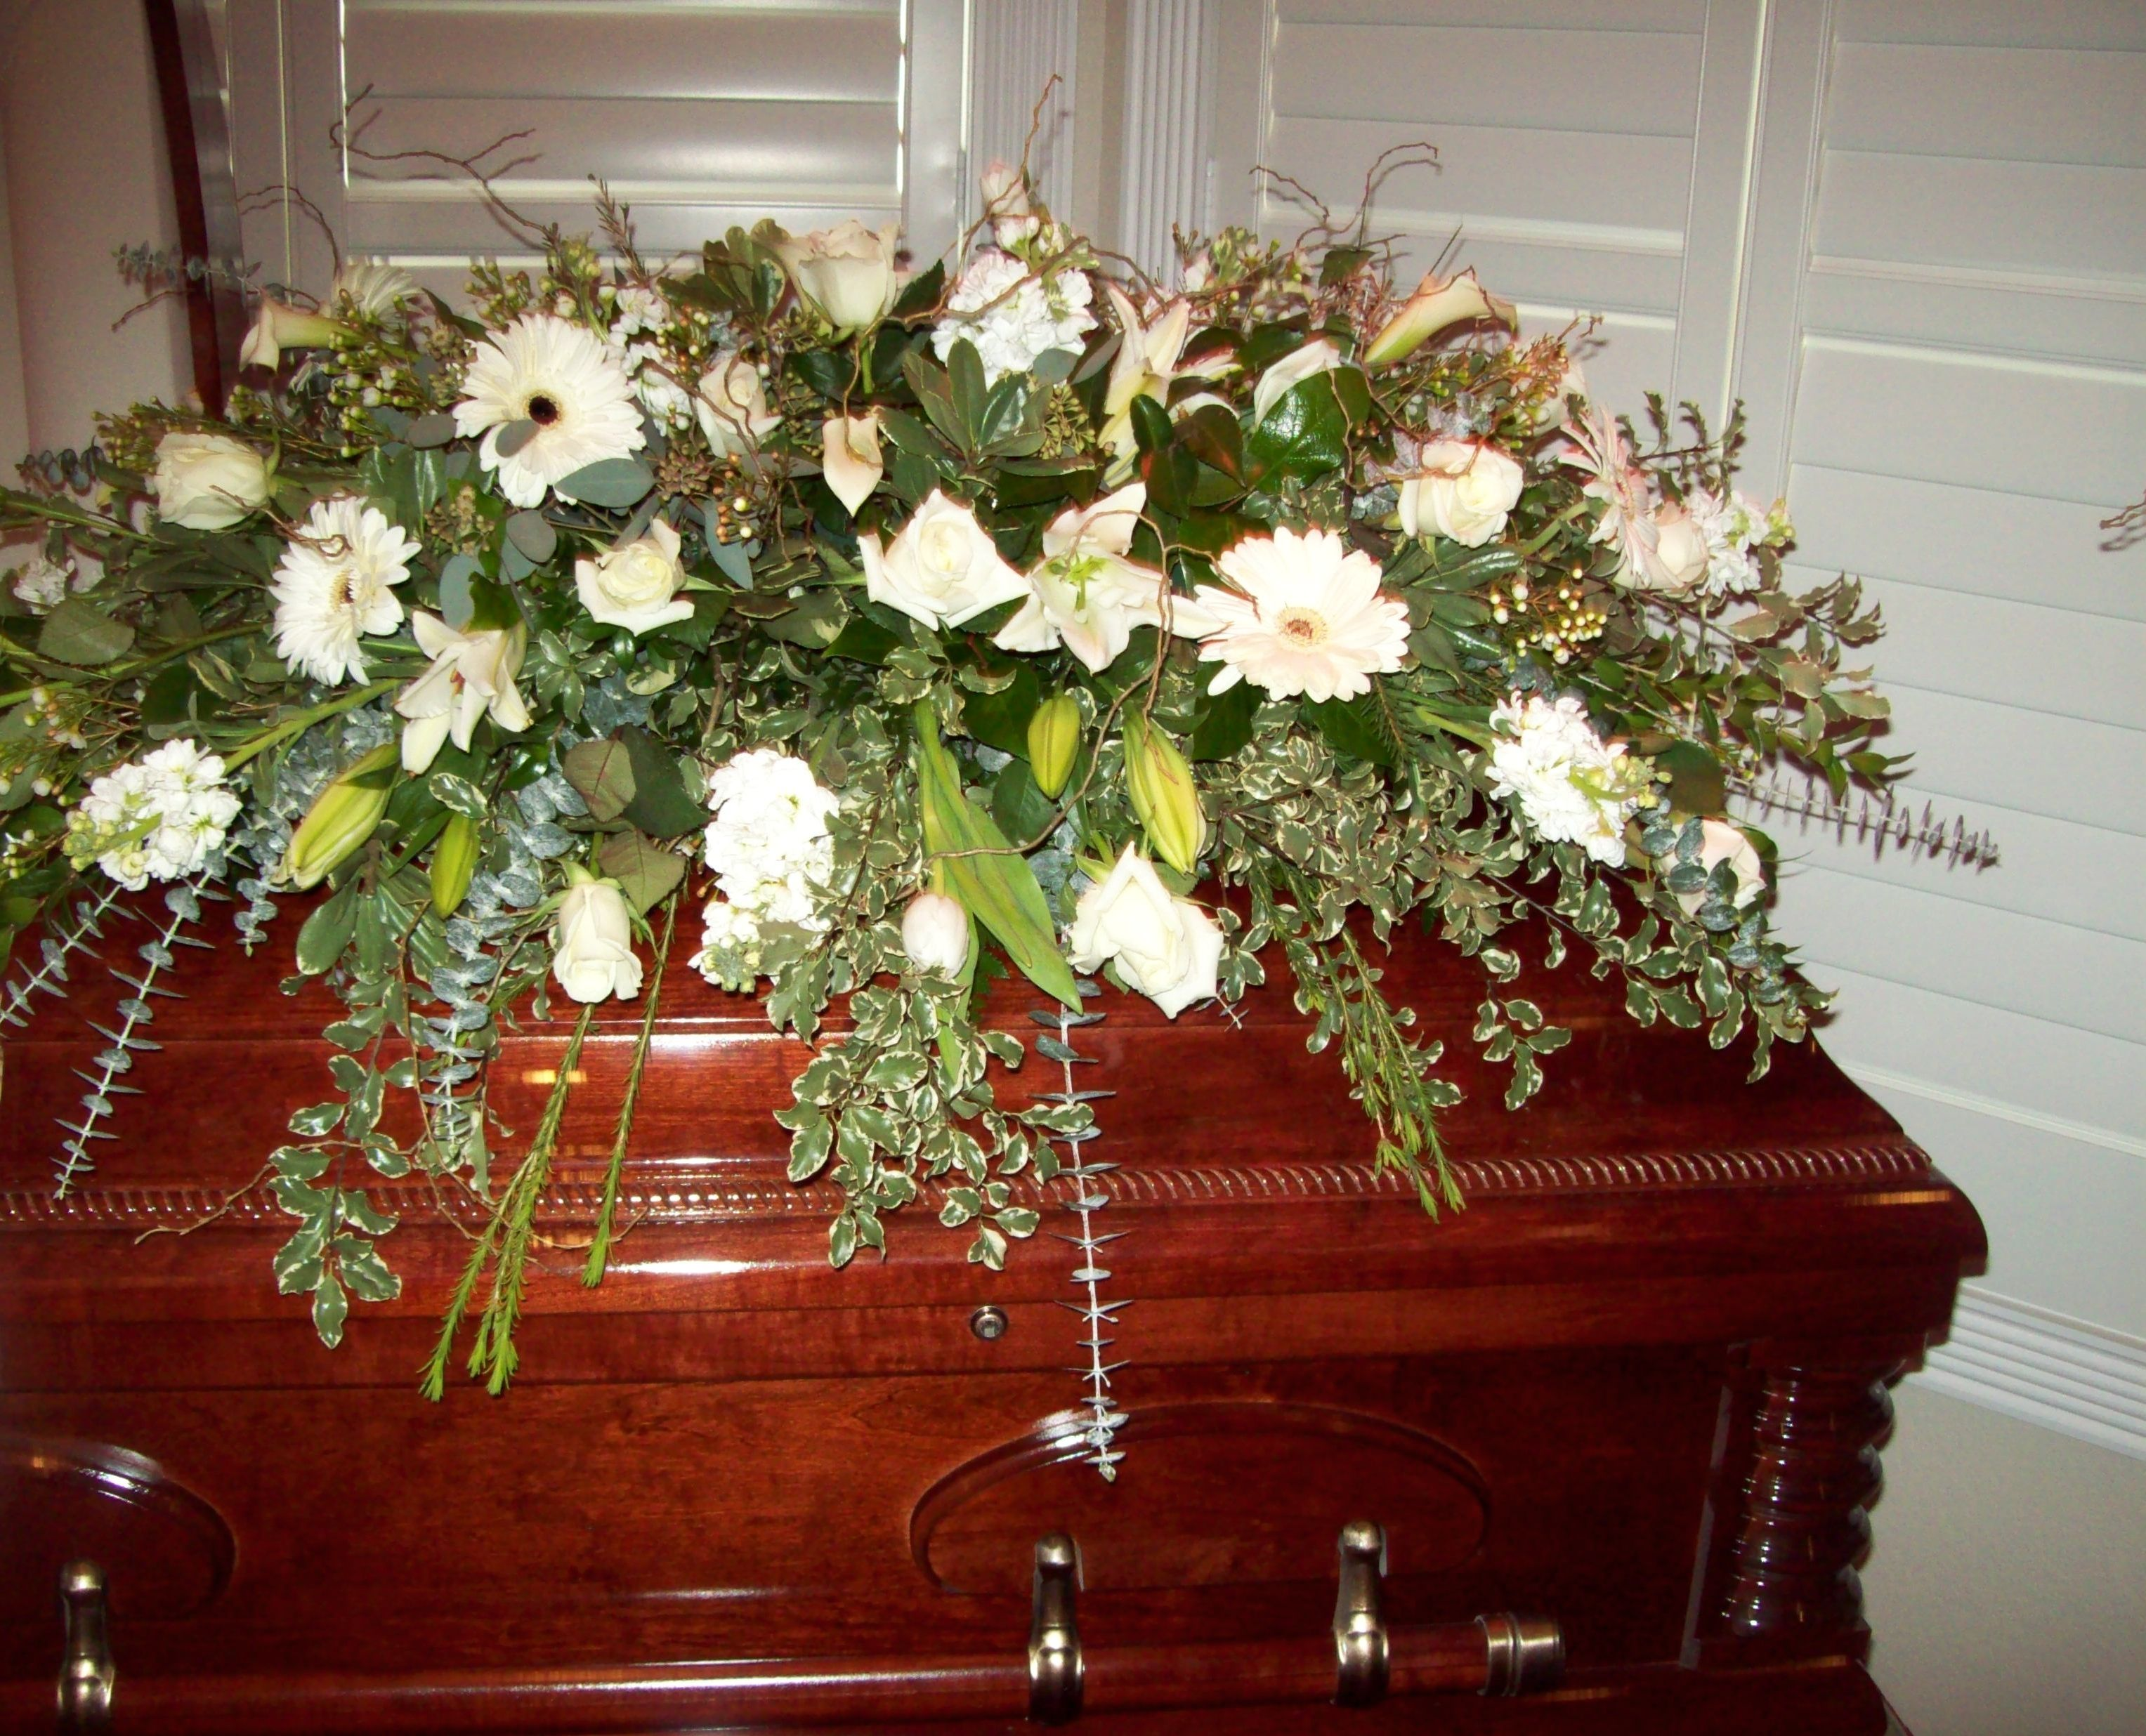 Premium white flowers with mix of natural greens complement this premium white flowers with mix of natural greens complement this wooden casket appropriate for a izmirmasajfo